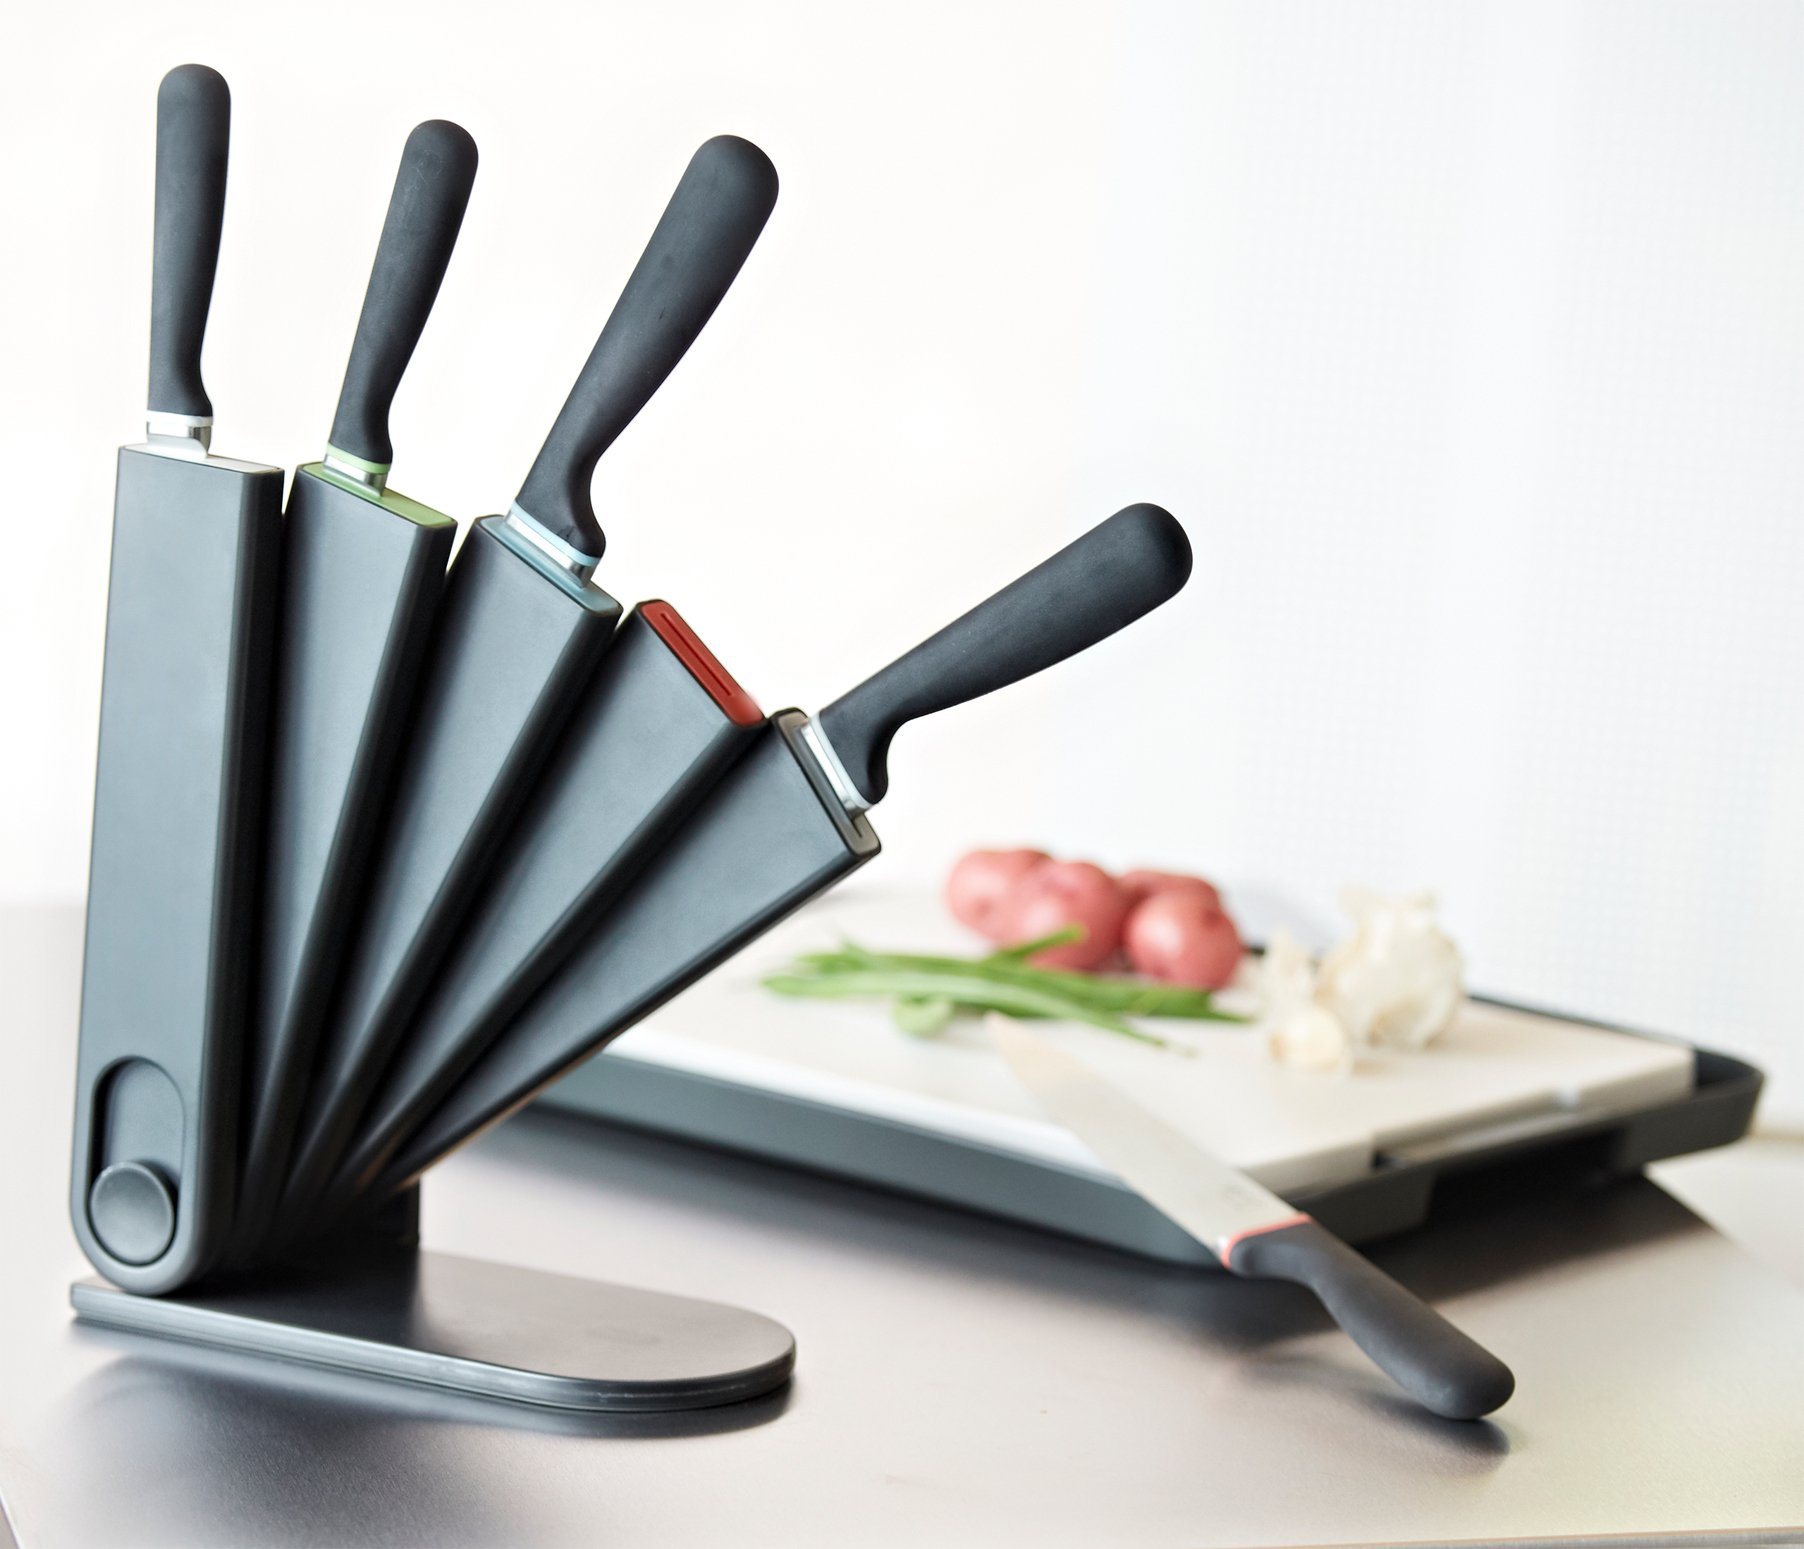 Venn Kitchen 3-Way Storage Knife Block Set with 5 Knives Included